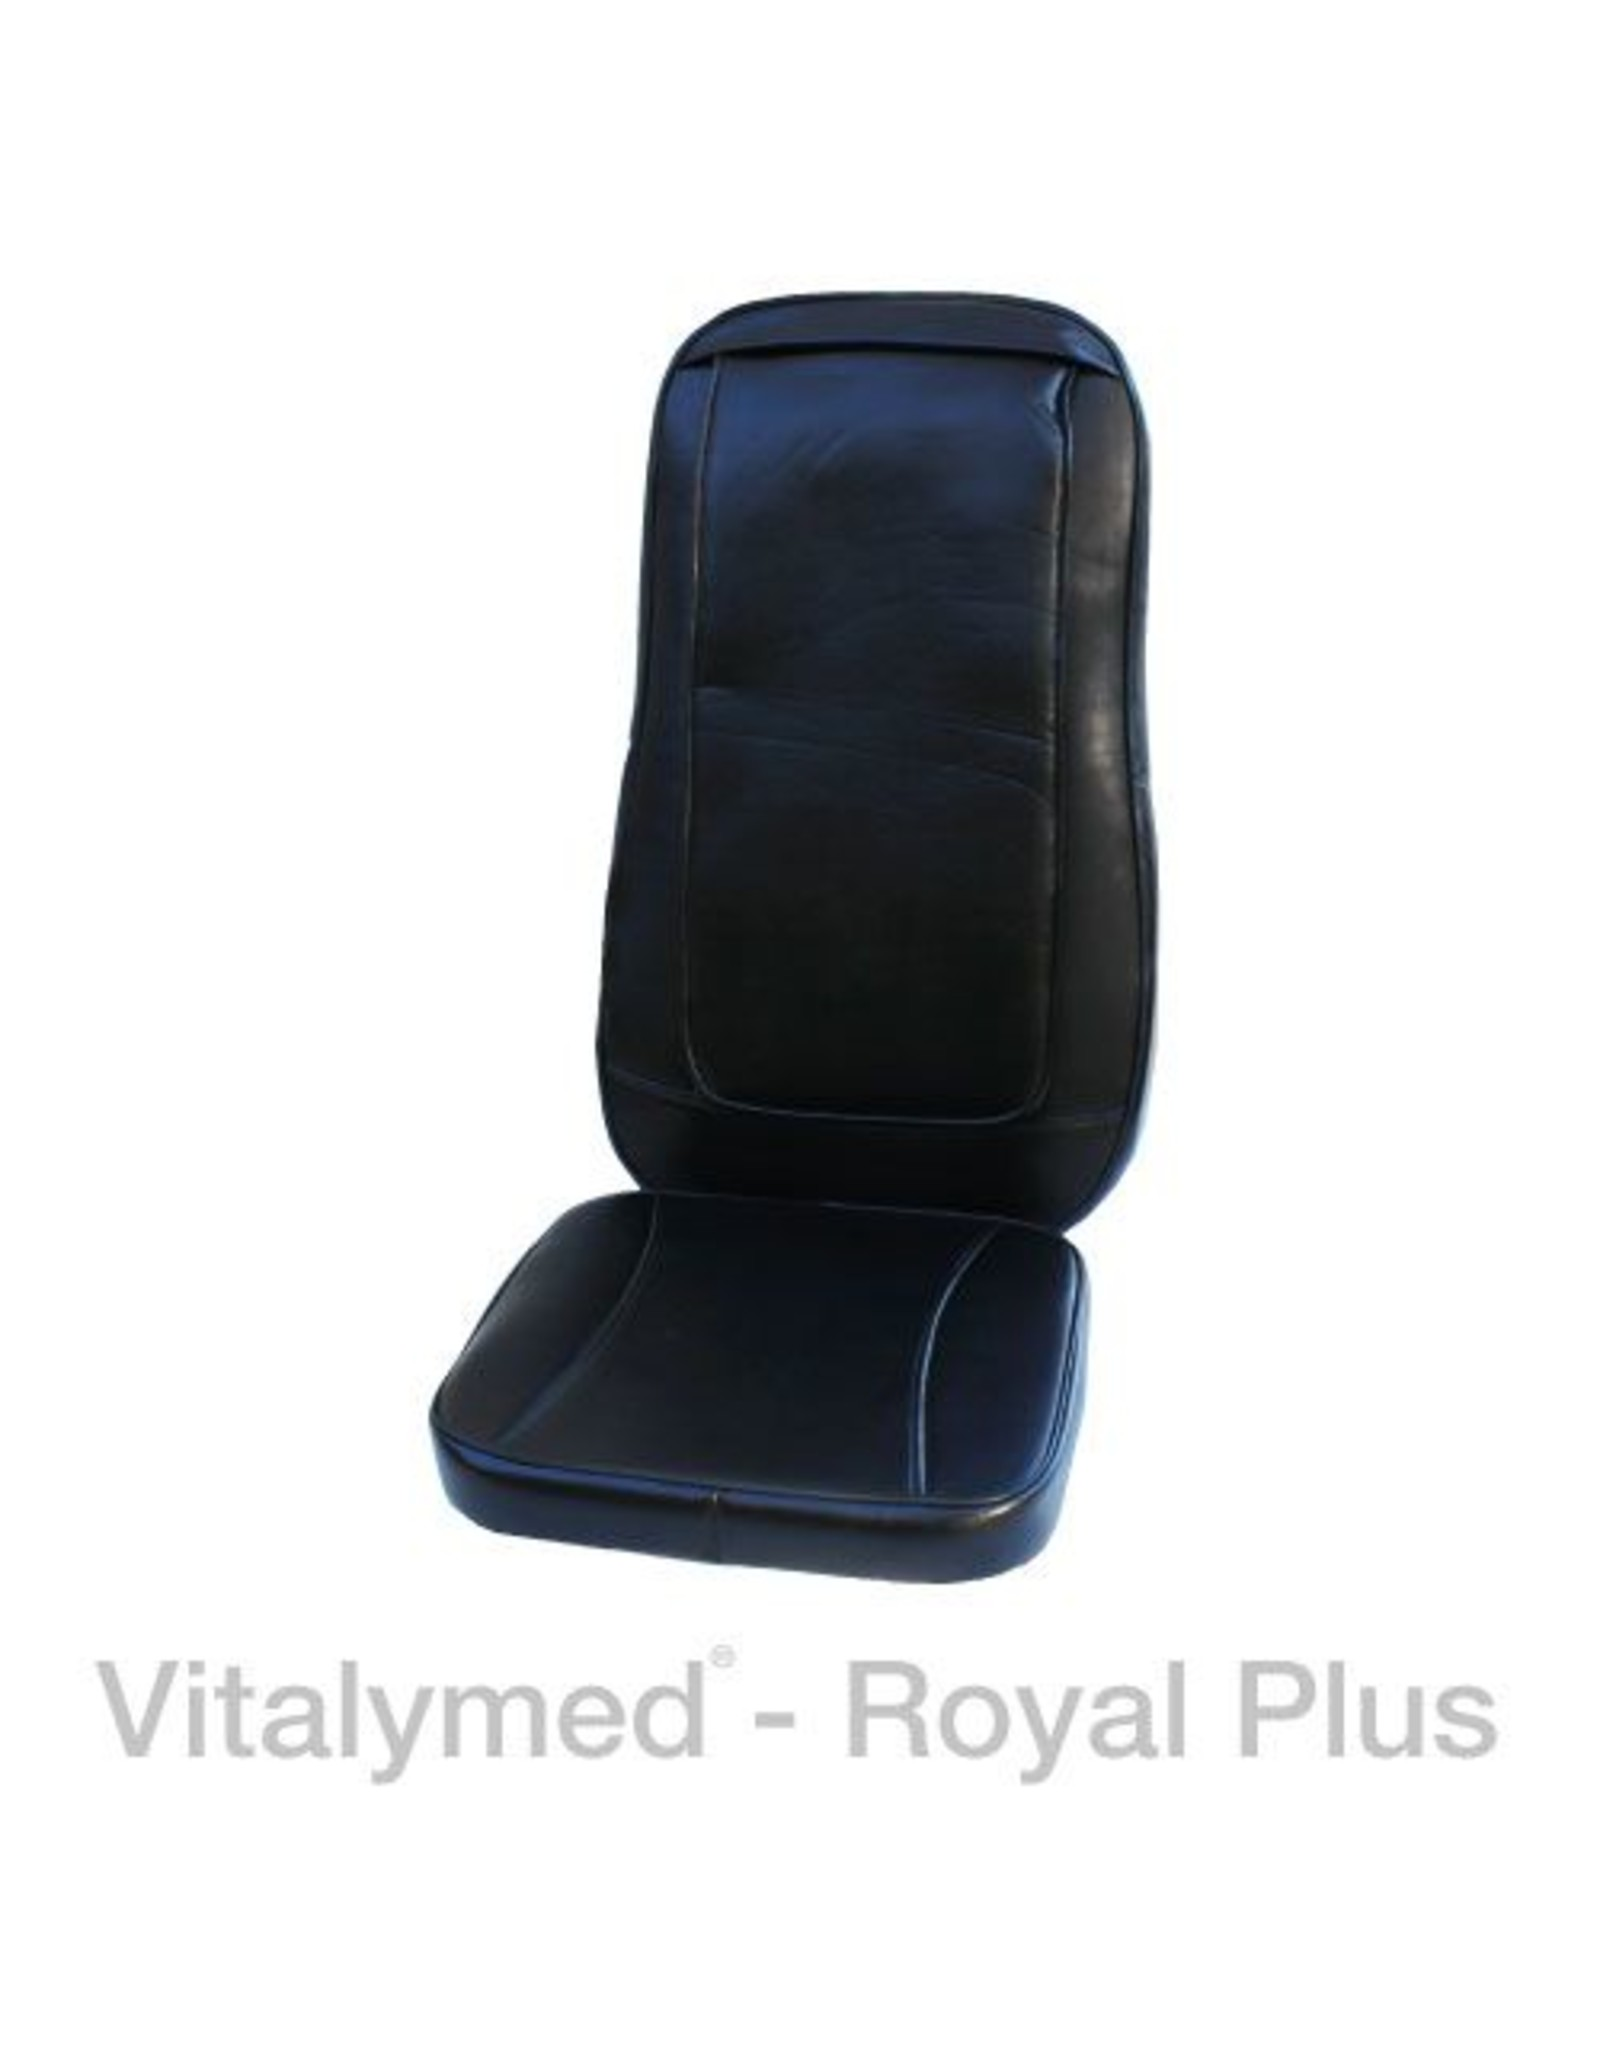 INVITALIS Vitalymed - Royal Plus